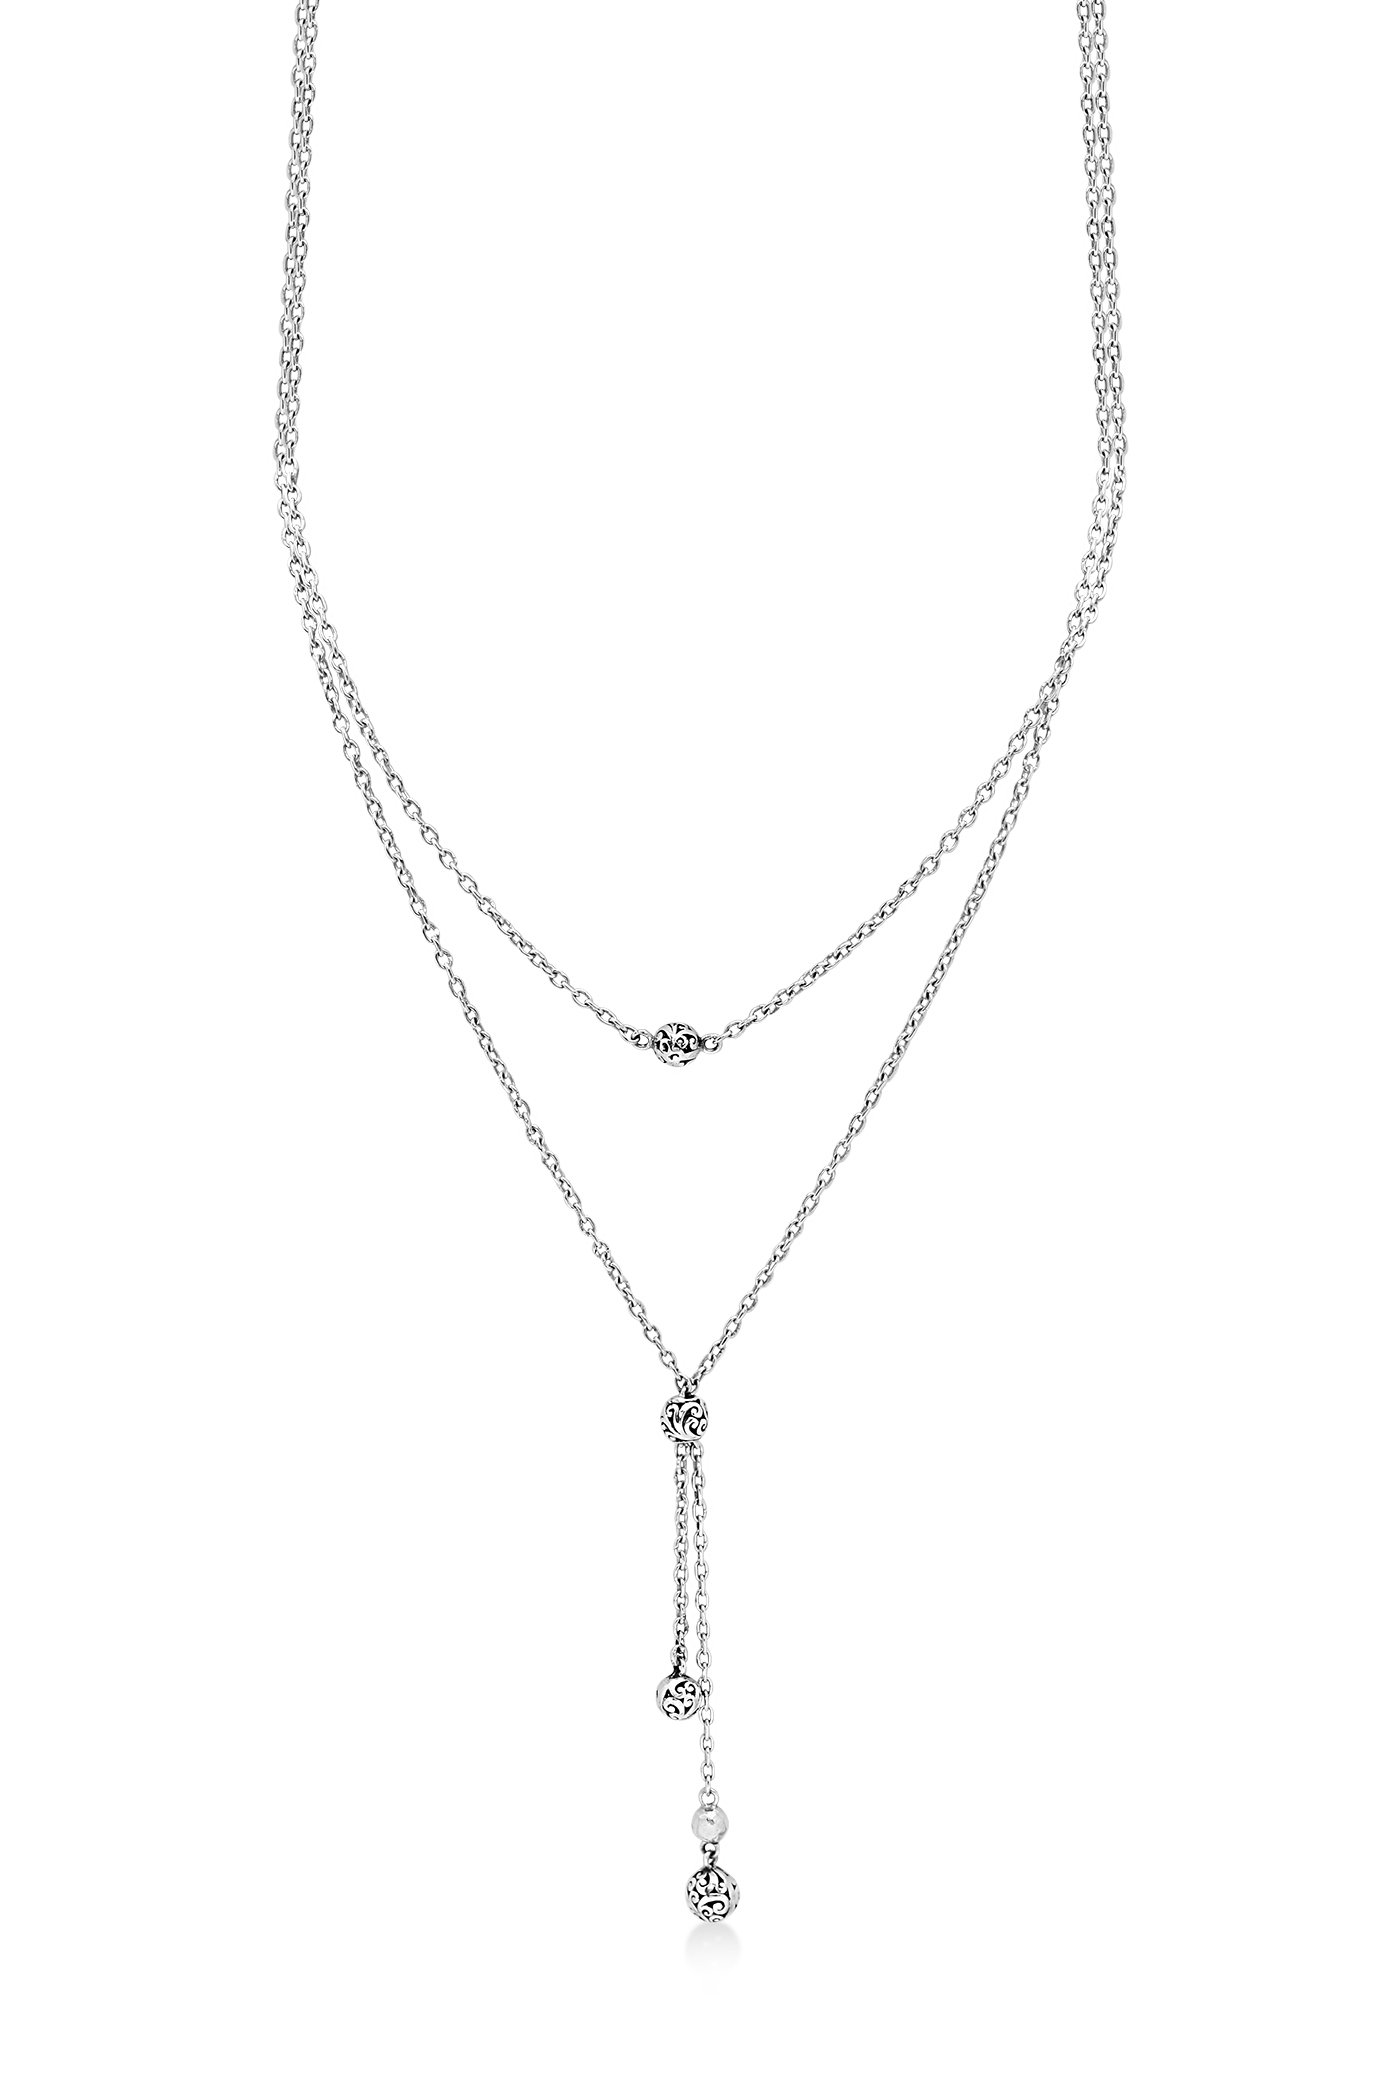 Lois Hill '' Choker'' Sterling Silver Handcrafted Scroll Beads, Dbl Layered Necklace , 14''